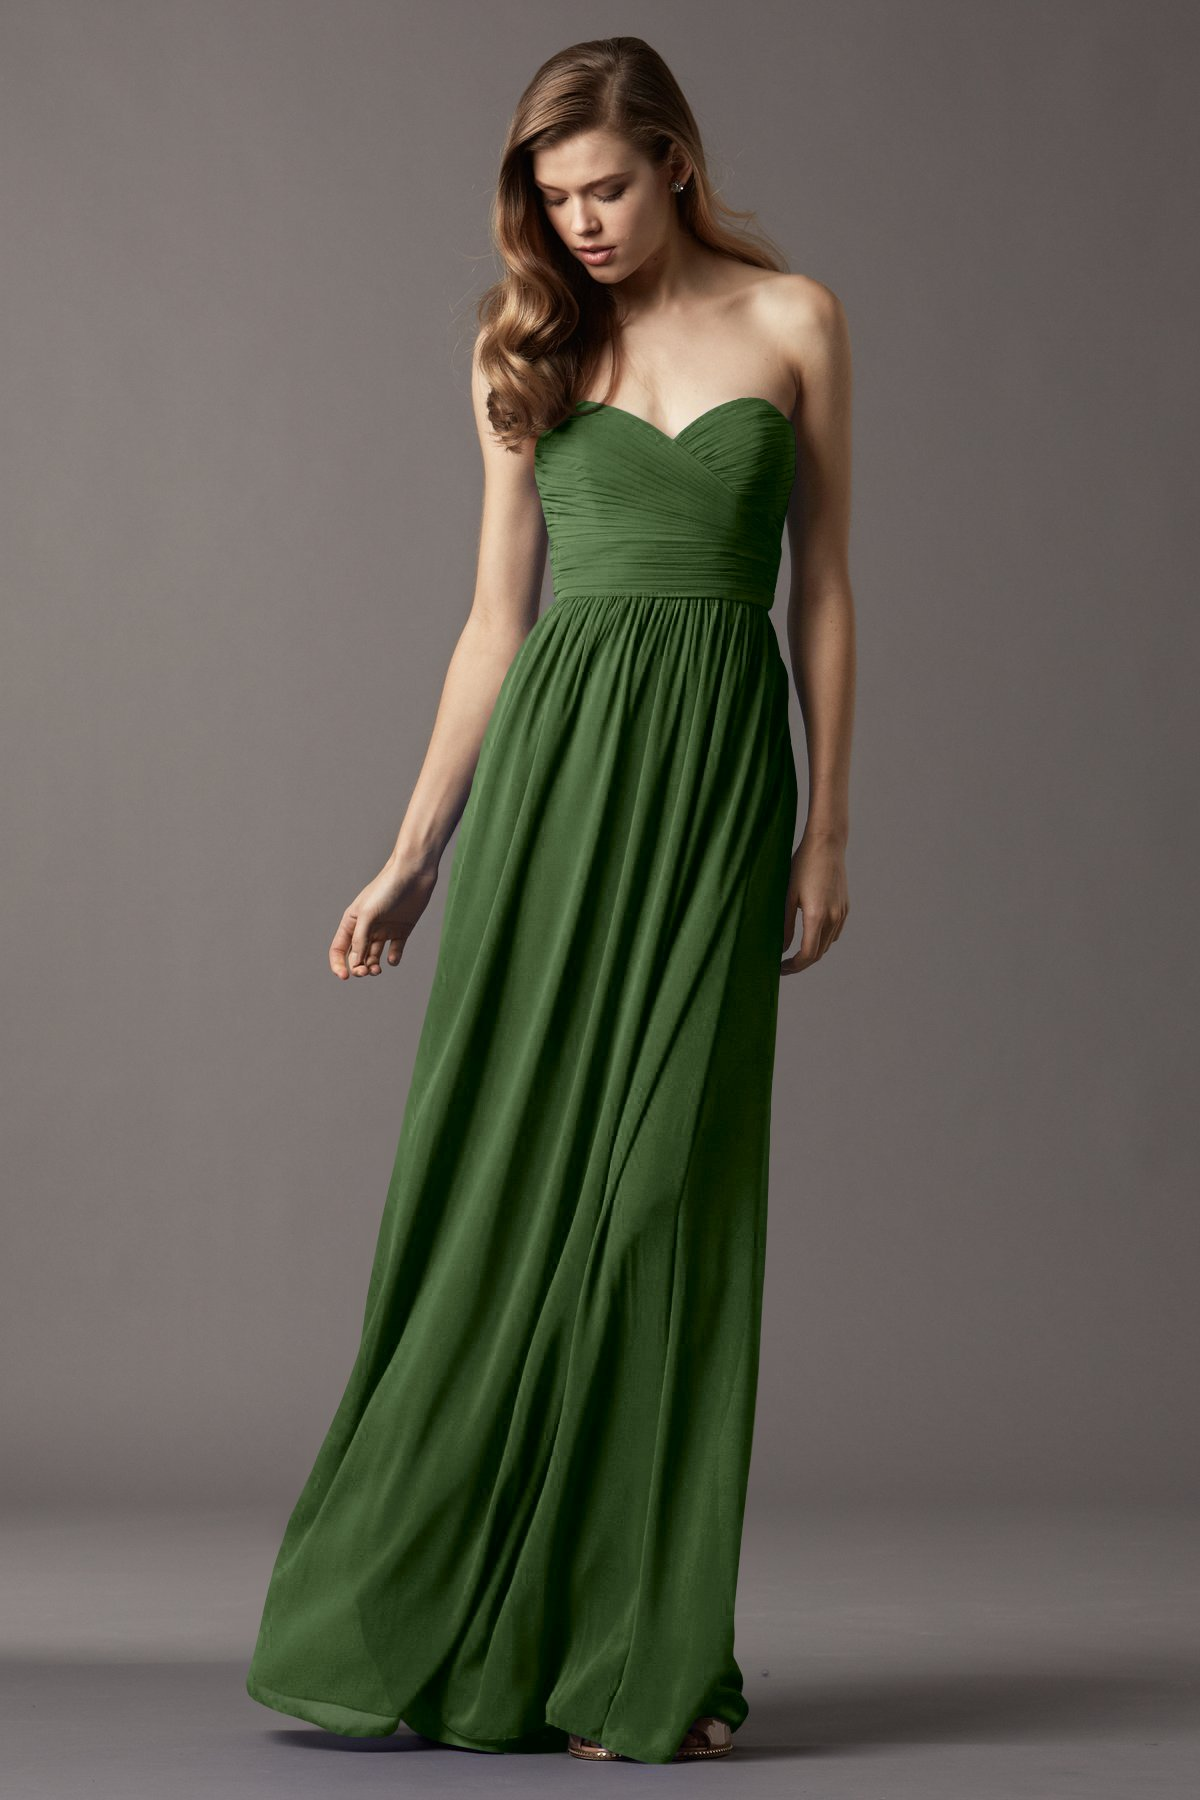 2017 flora Strapless Sweetheart Gowns